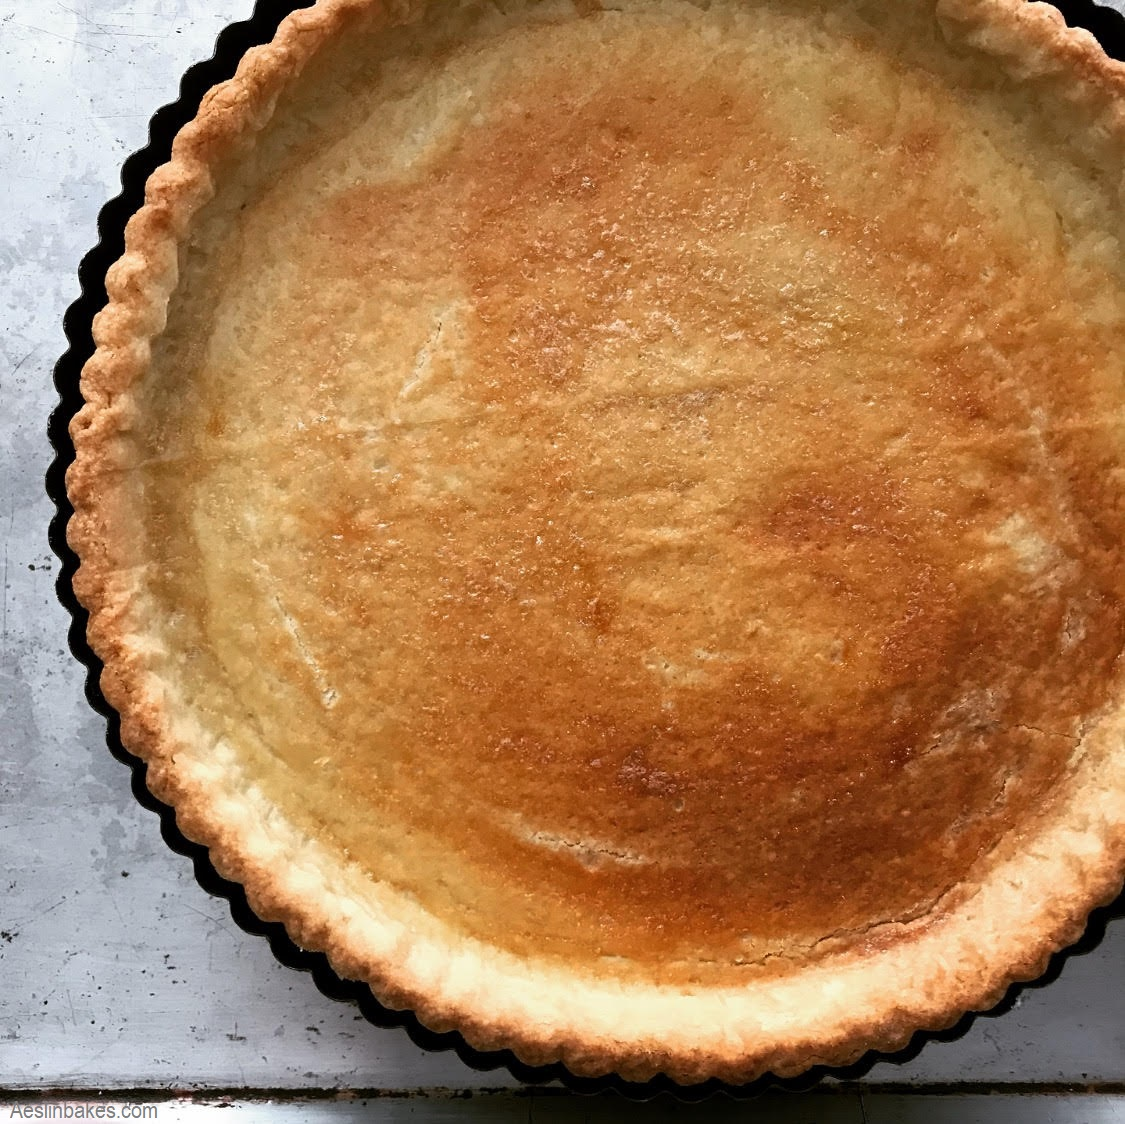 fully baked sweet pastry